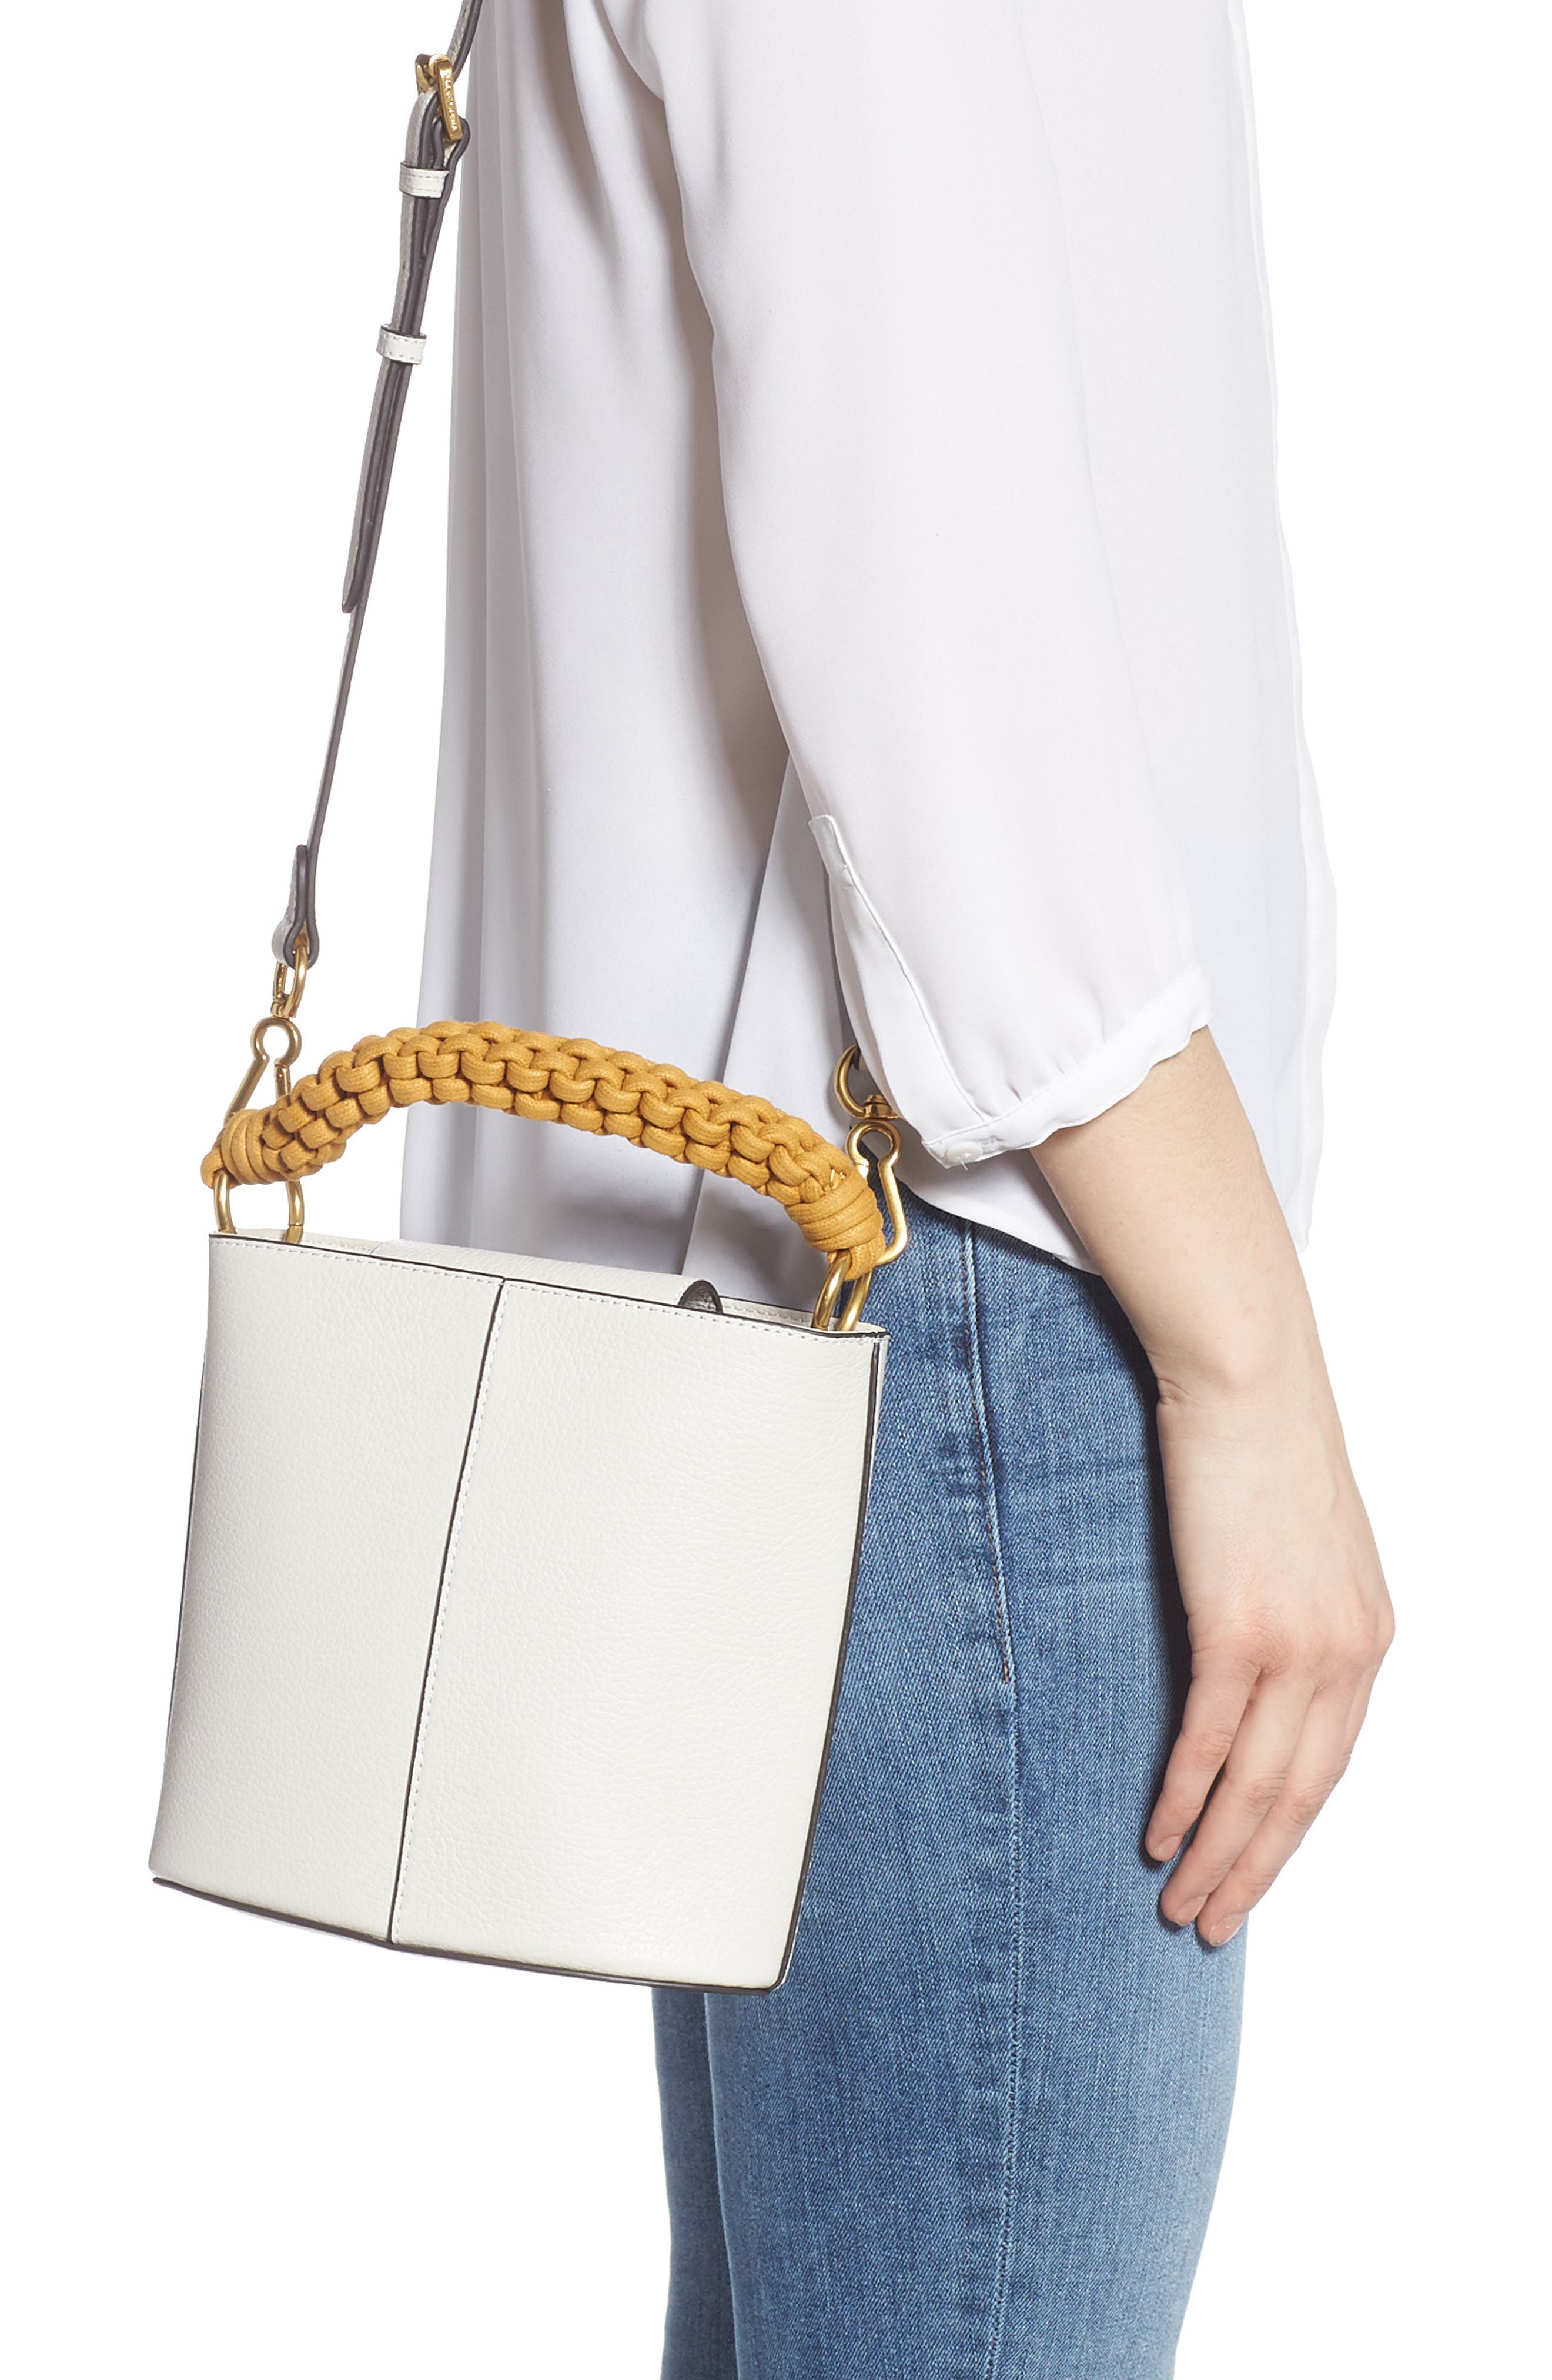 VINCE CAMUTO, Zane Leather Bucket Bag, Alternate thumbnail 2, color, SNOW WHITE